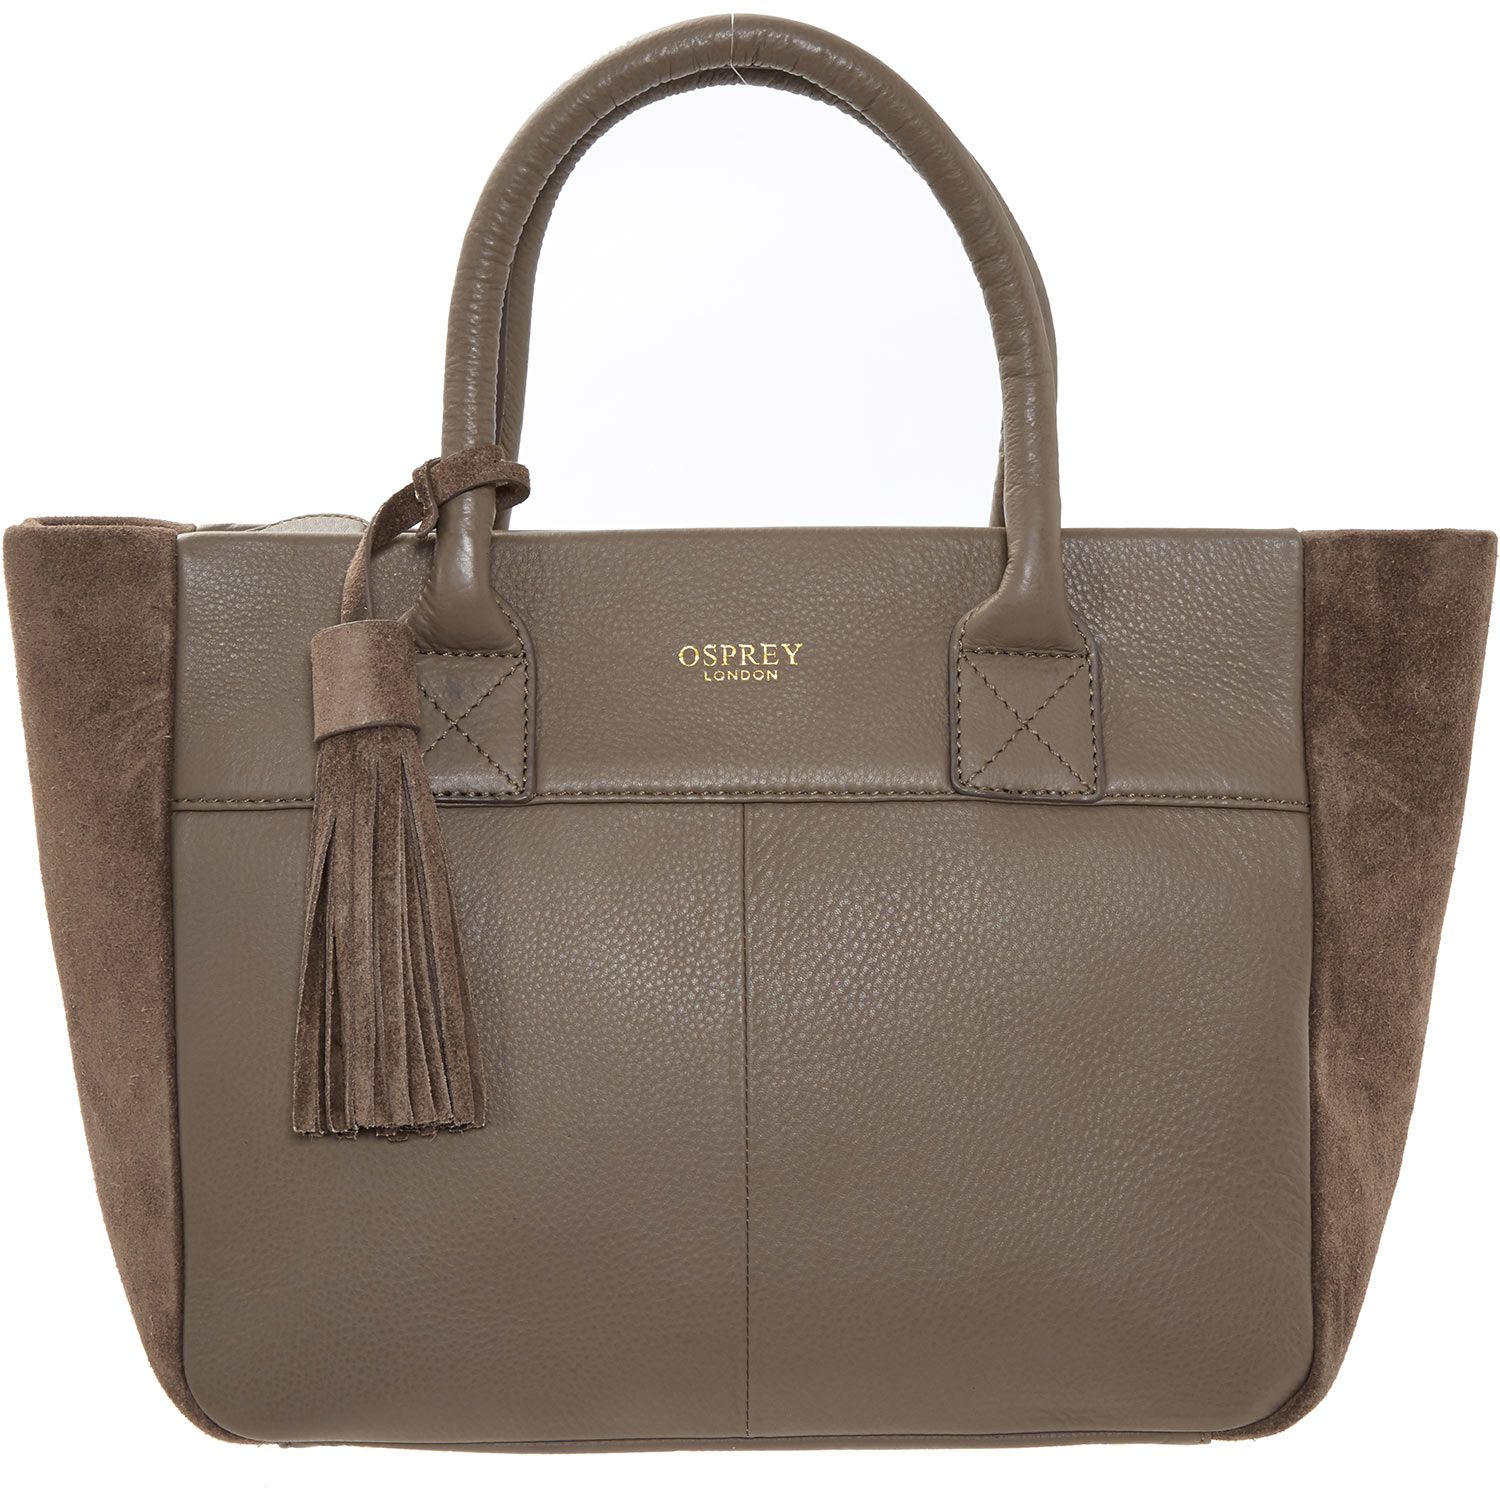 Osprey womens leather gloves -  Osprey London Taupe Suede Tote Bag Tk Maxx